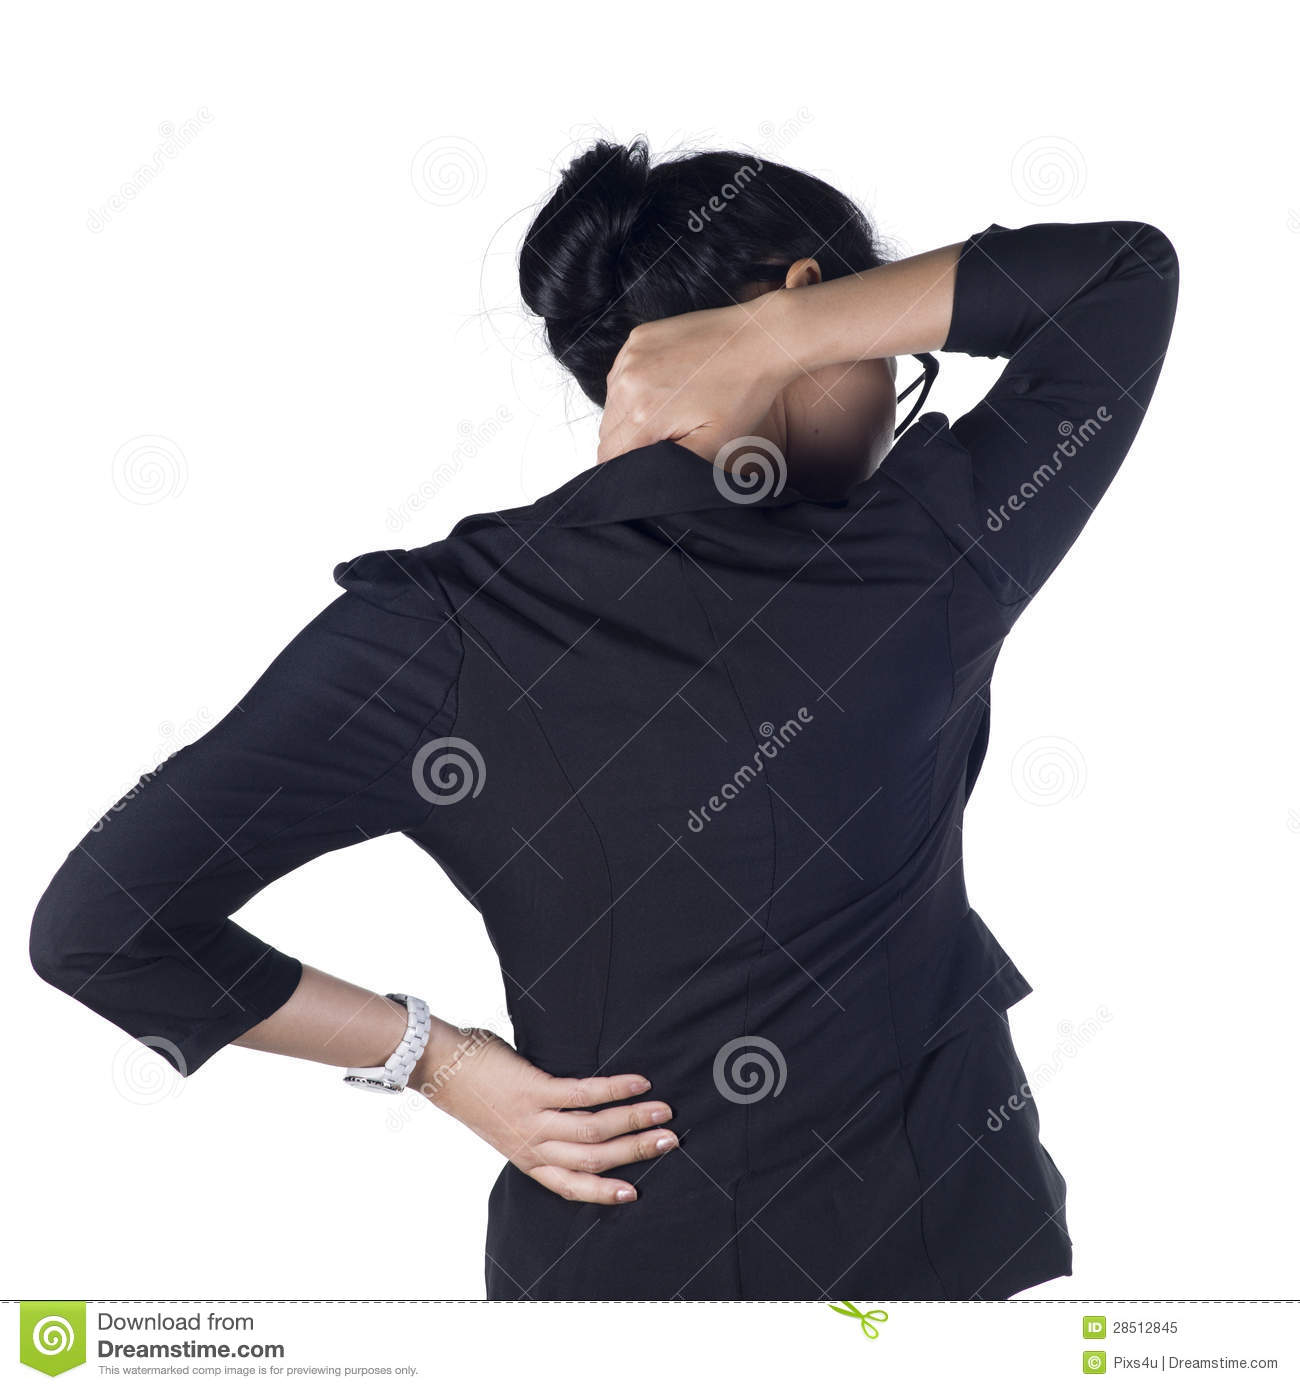 Woman with back pain stock photo. Image of brown